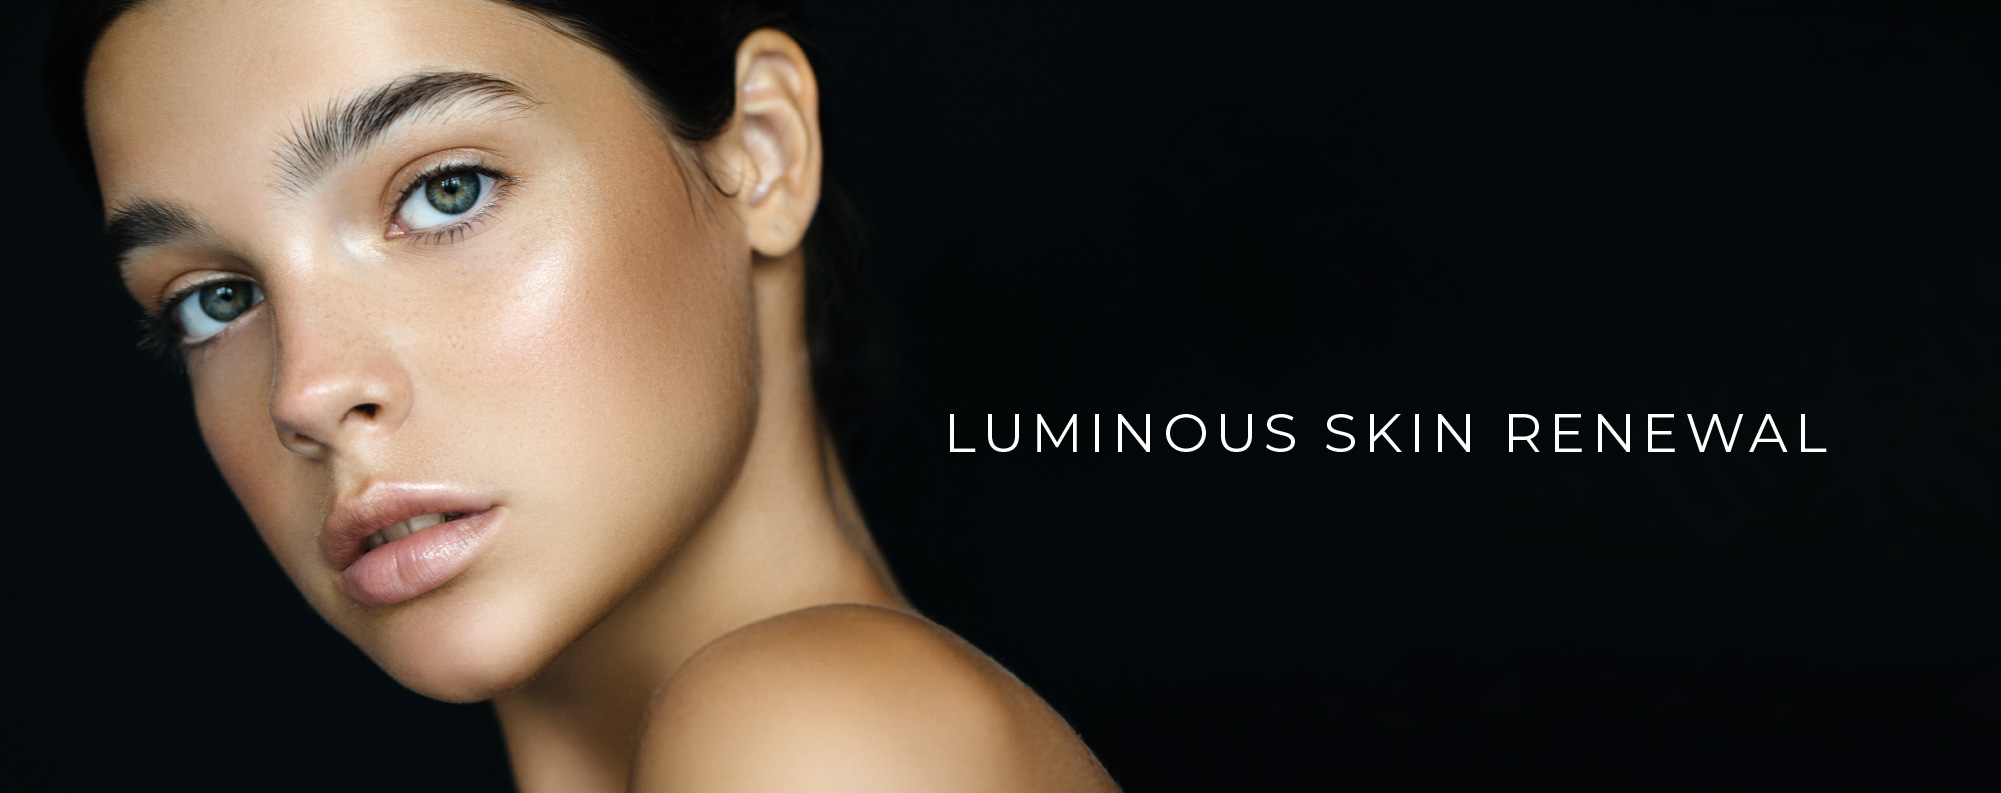 Luminous Skin Renewal